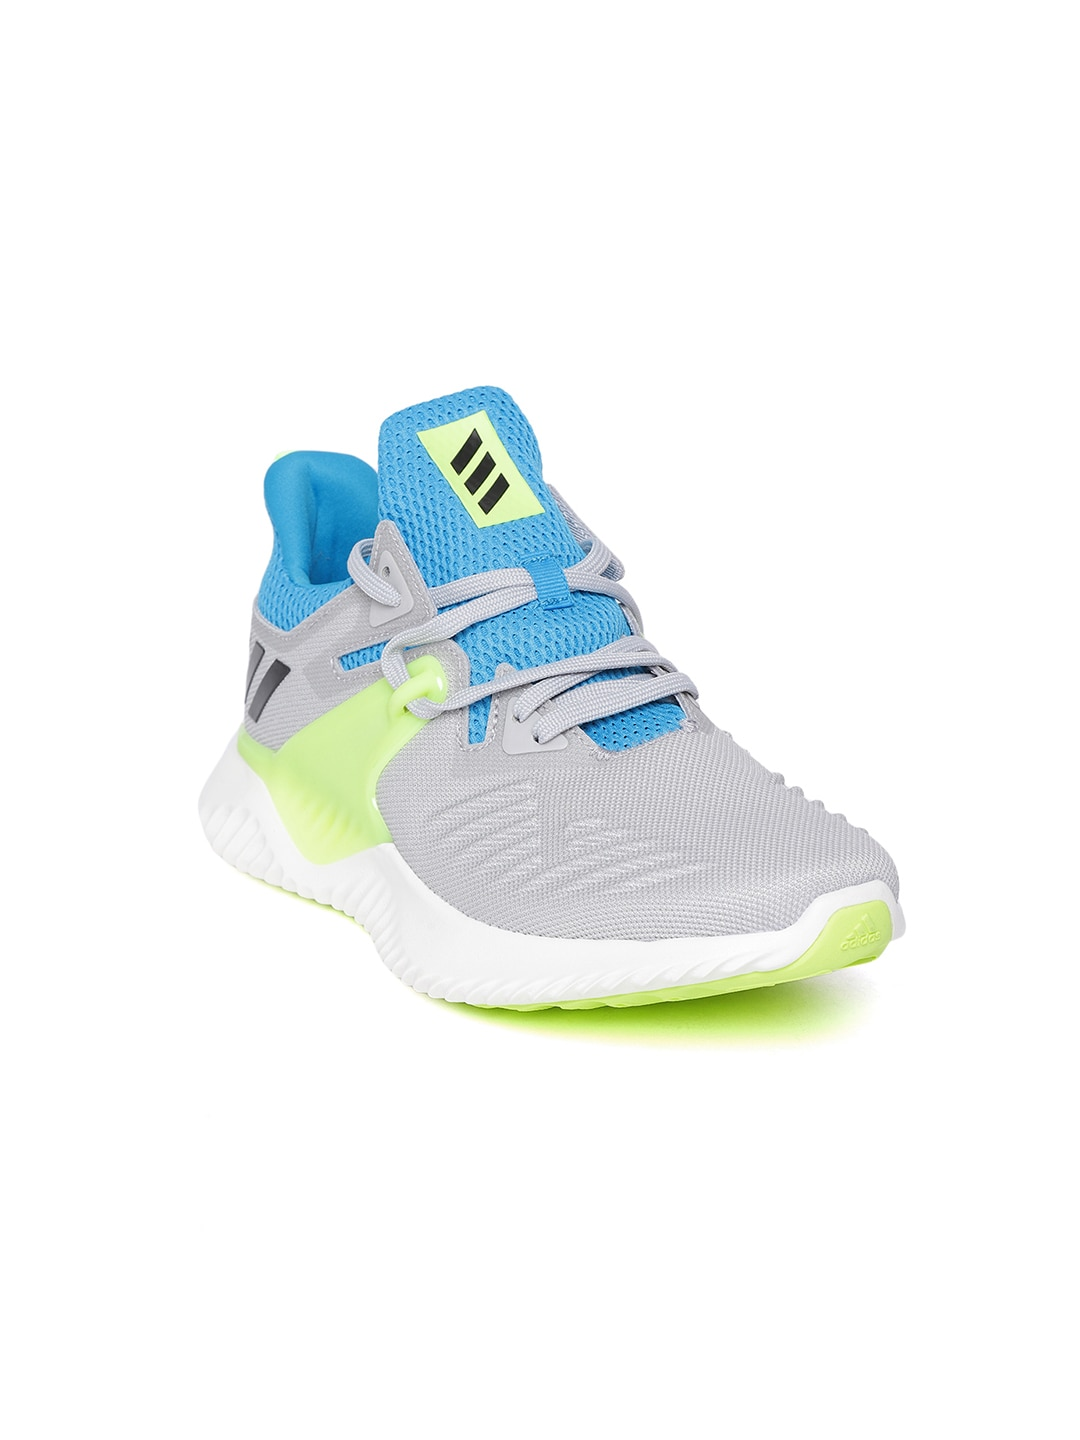 3c57ecac2 Boys Sports Shoes - Buy Sports Shoes For Kids Online in India